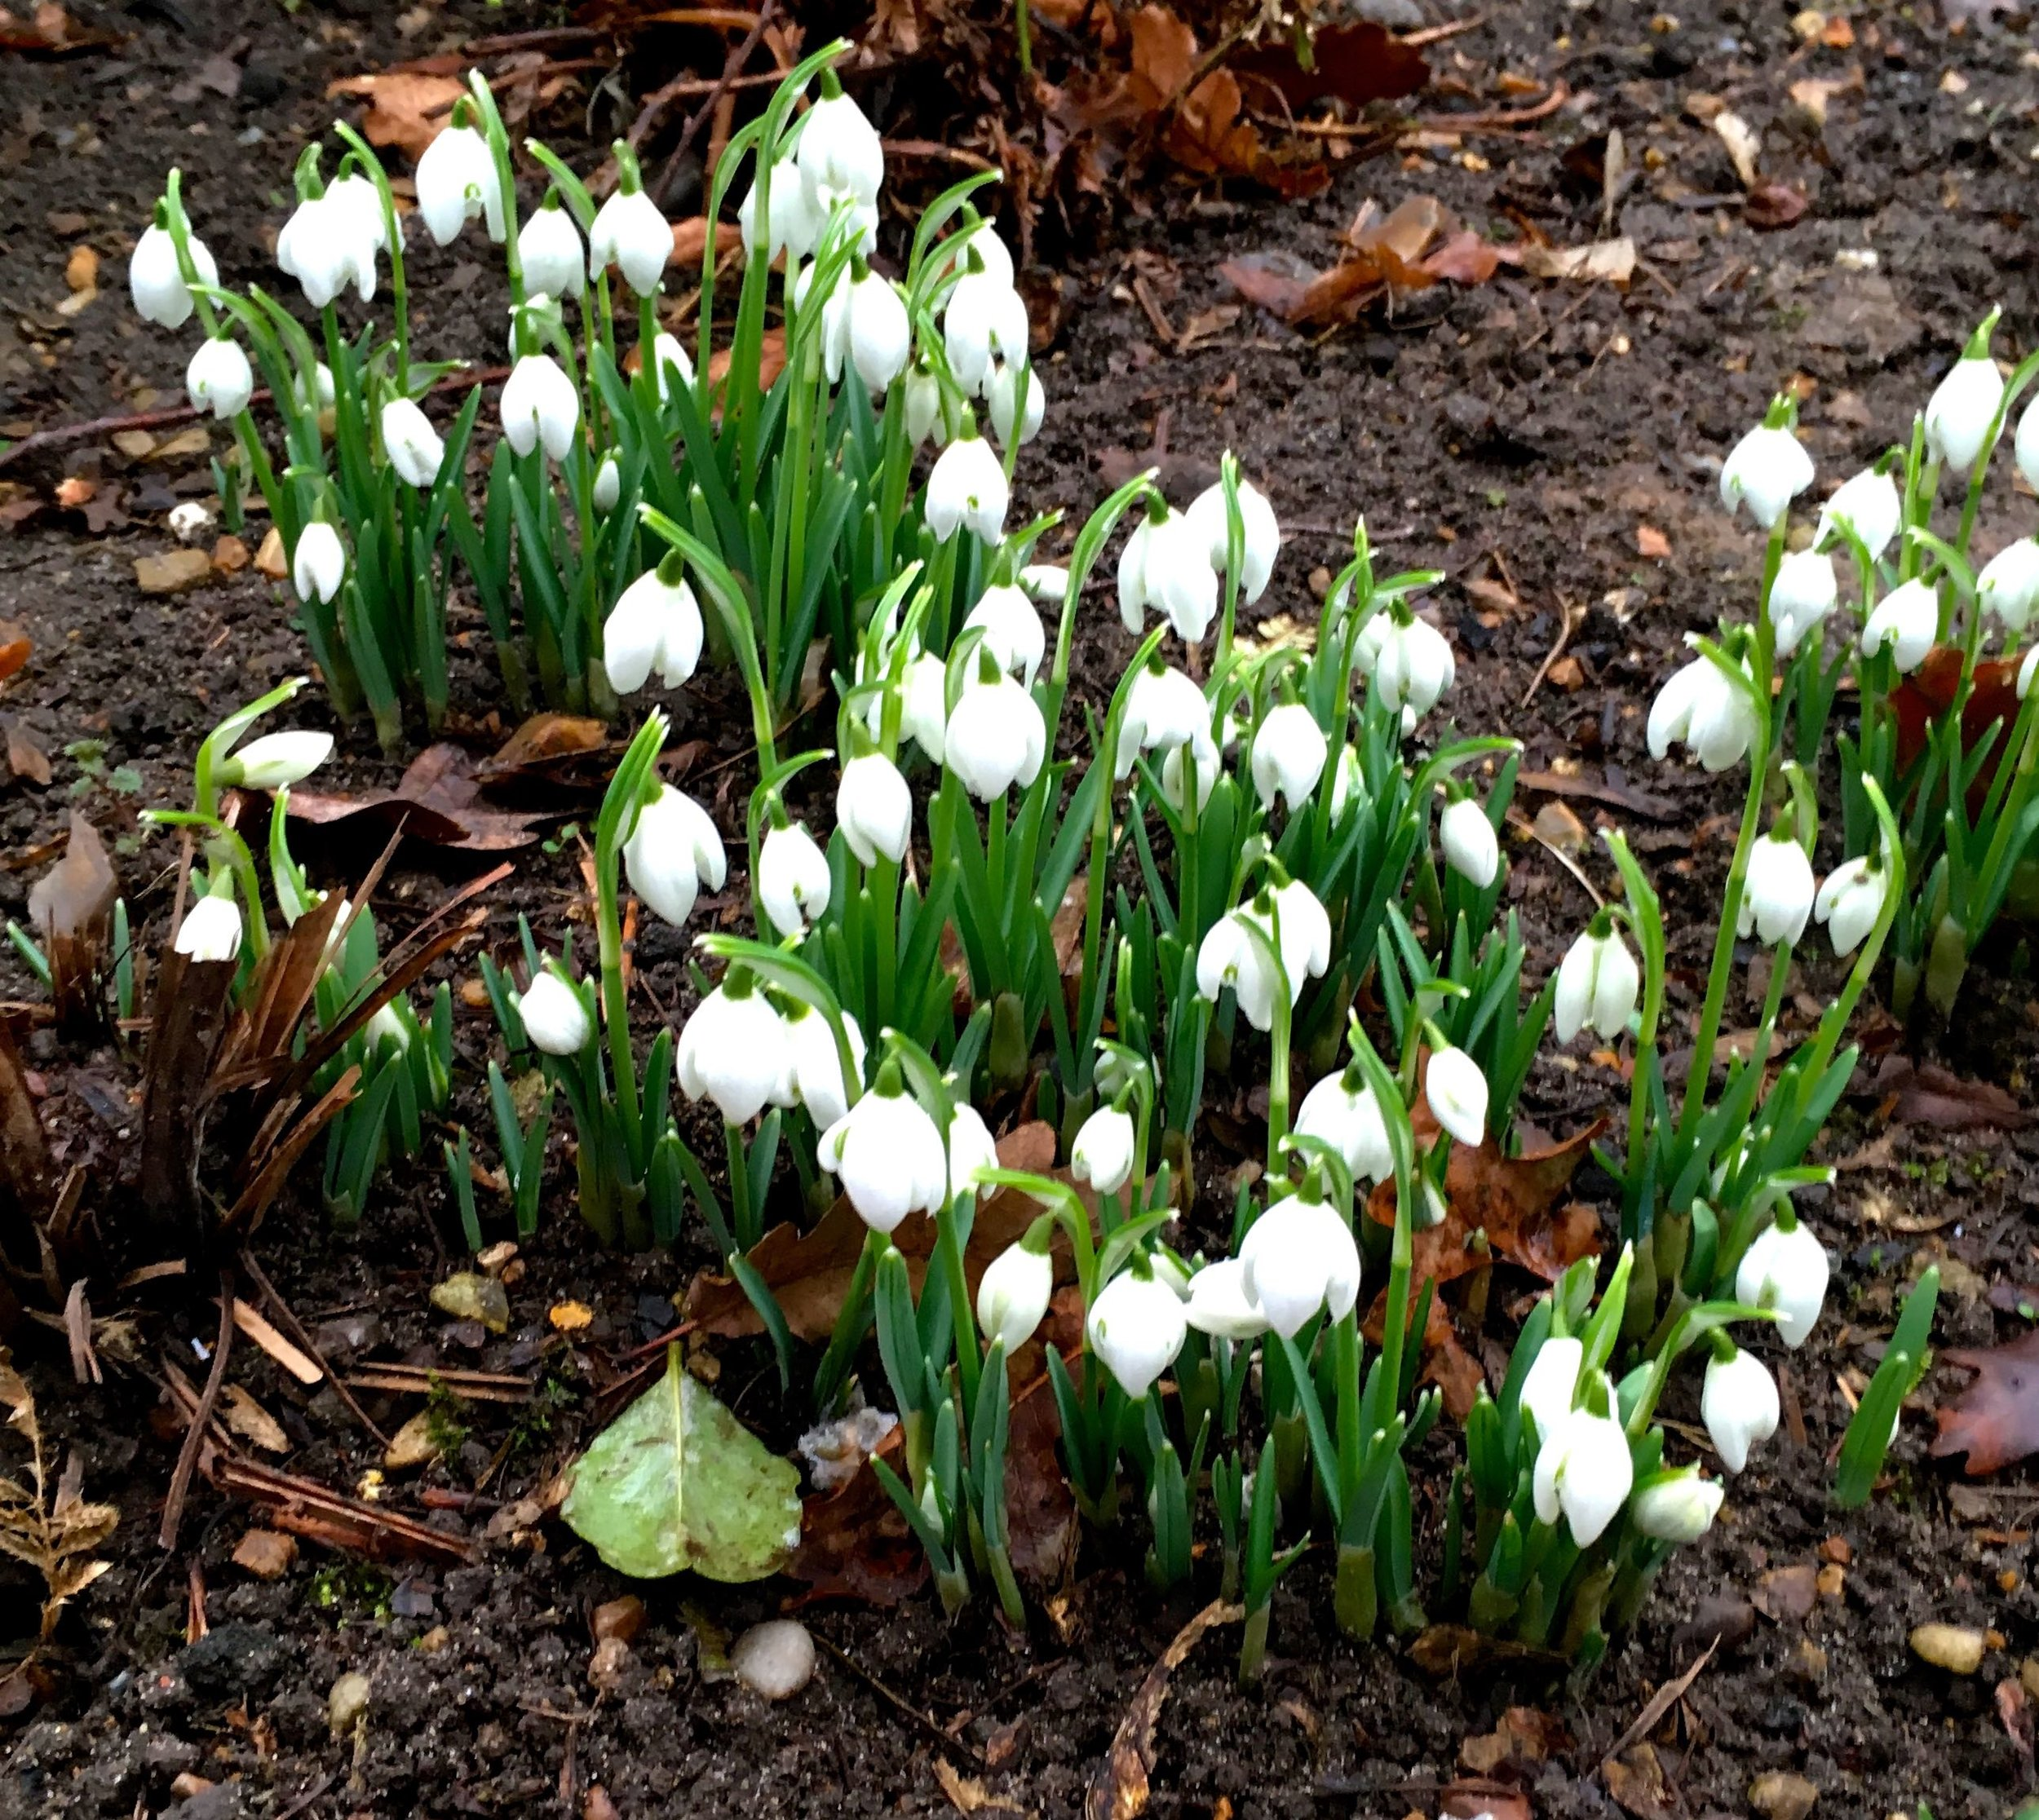 More snowdrops near the Temple at Blickling in Norfolk